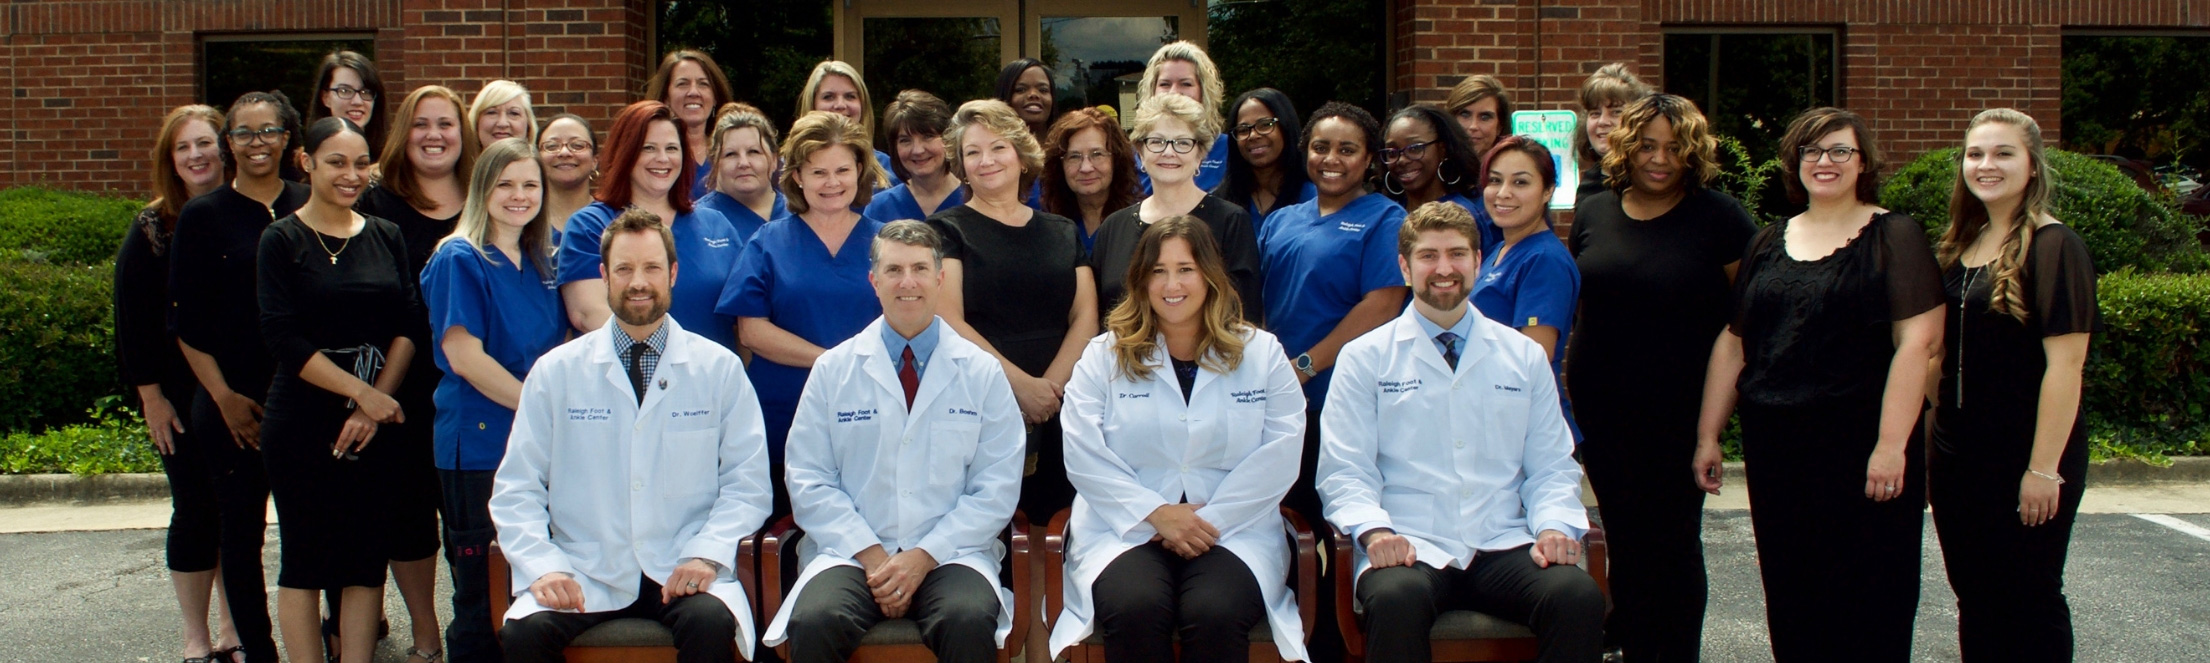 Raleigh Foot & Ankle Center - Clinical & Administrative Staff